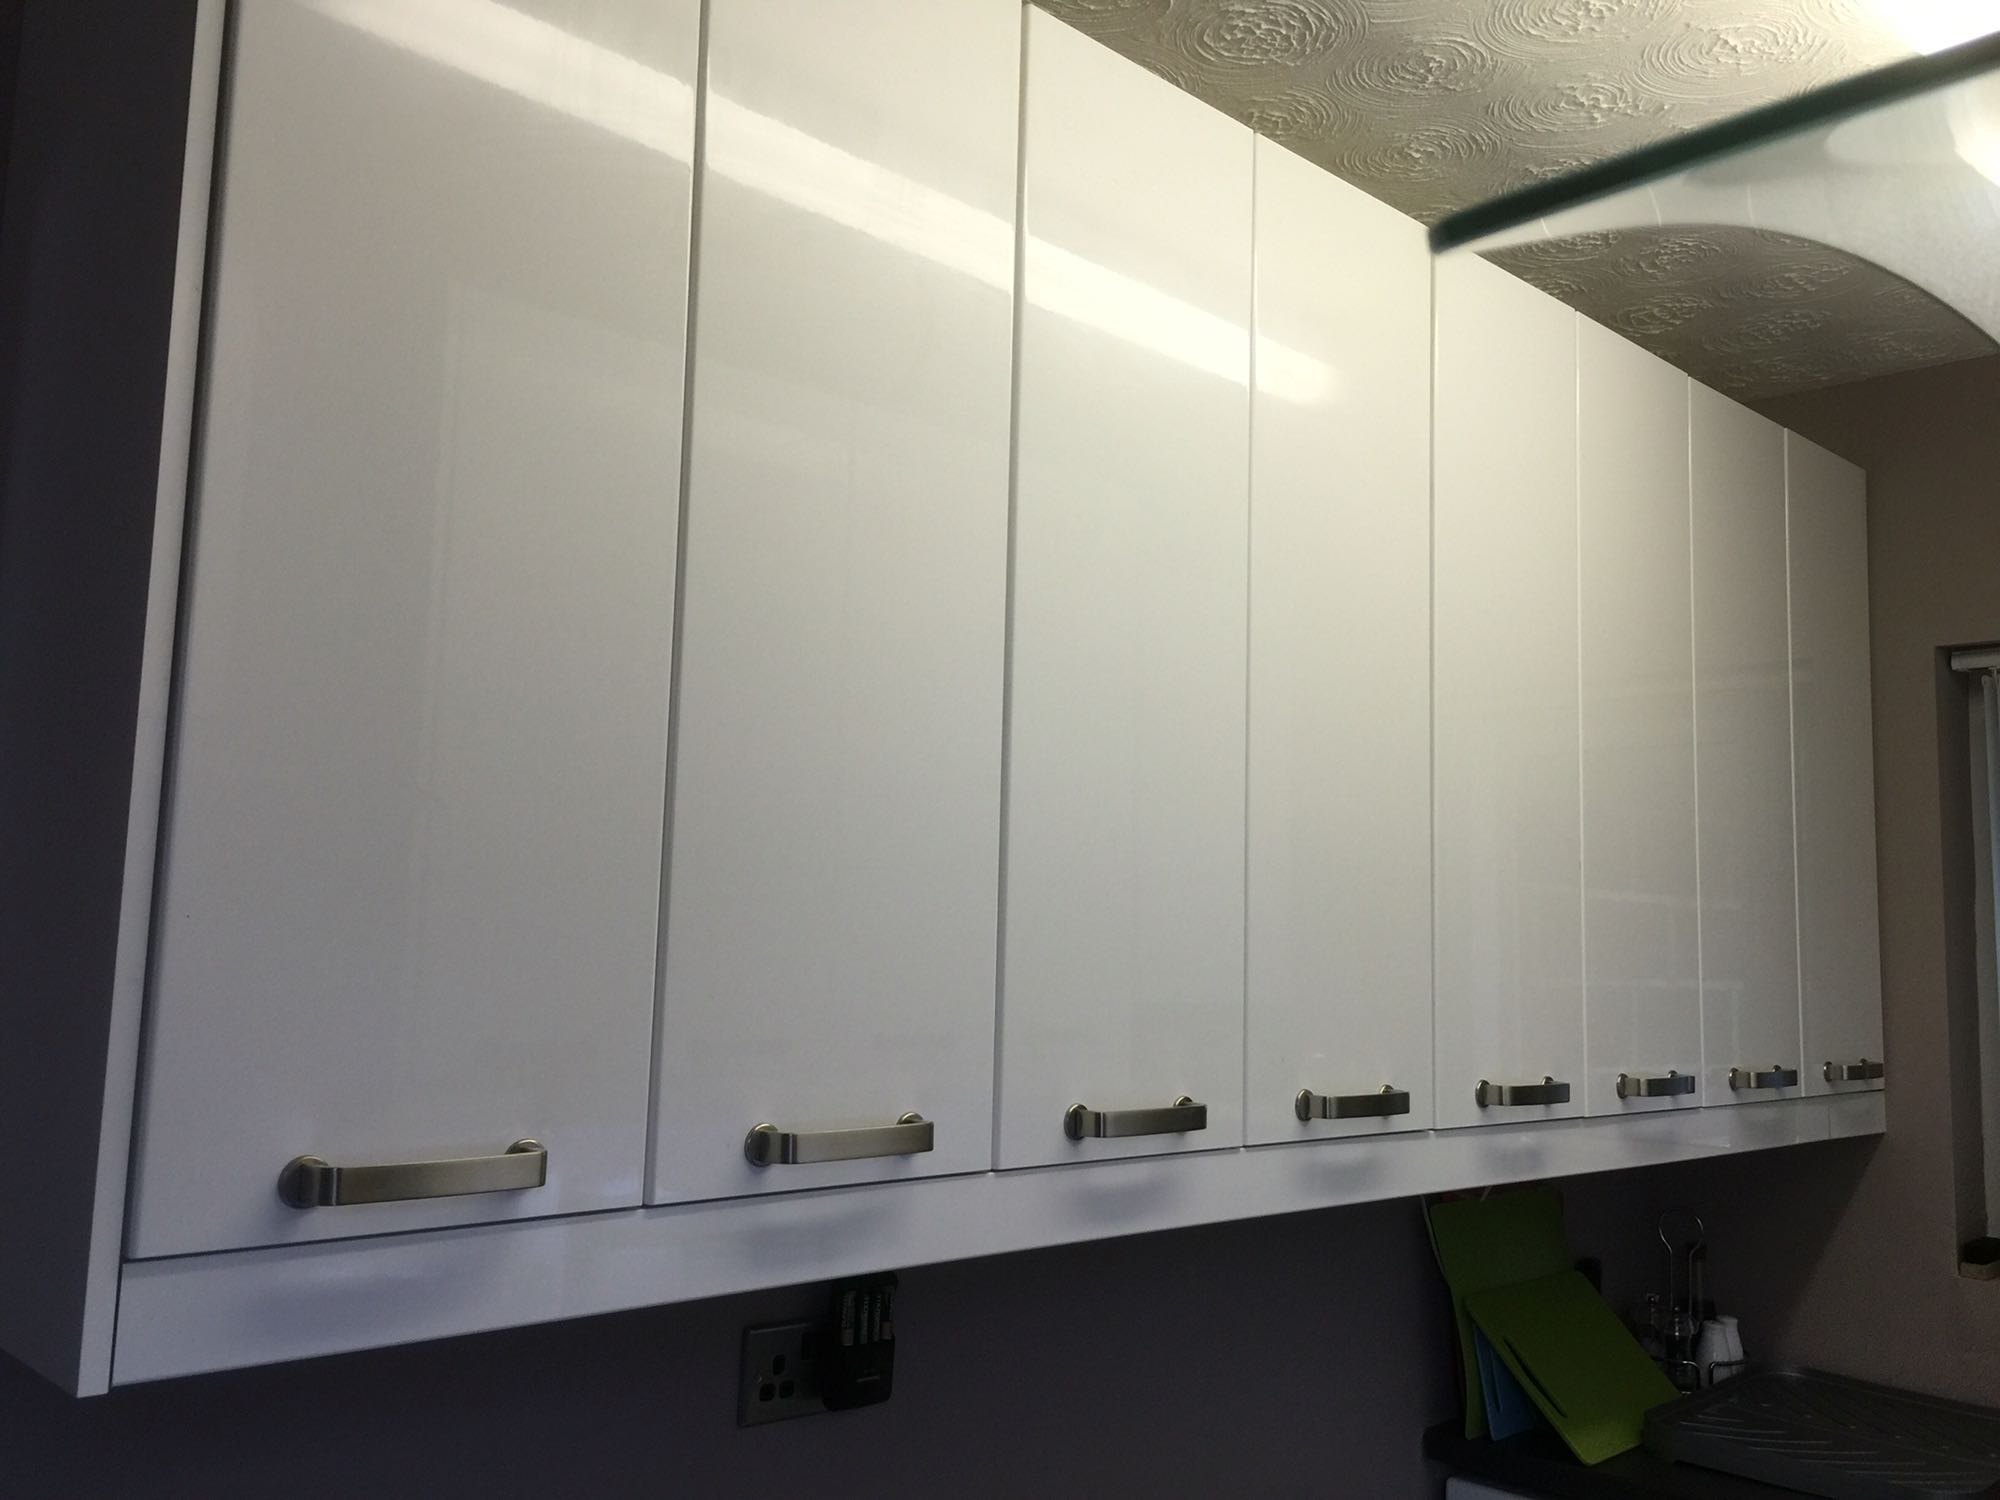 White kitchen wall units for sale in uk view 108 ads for White kitchen units for sale